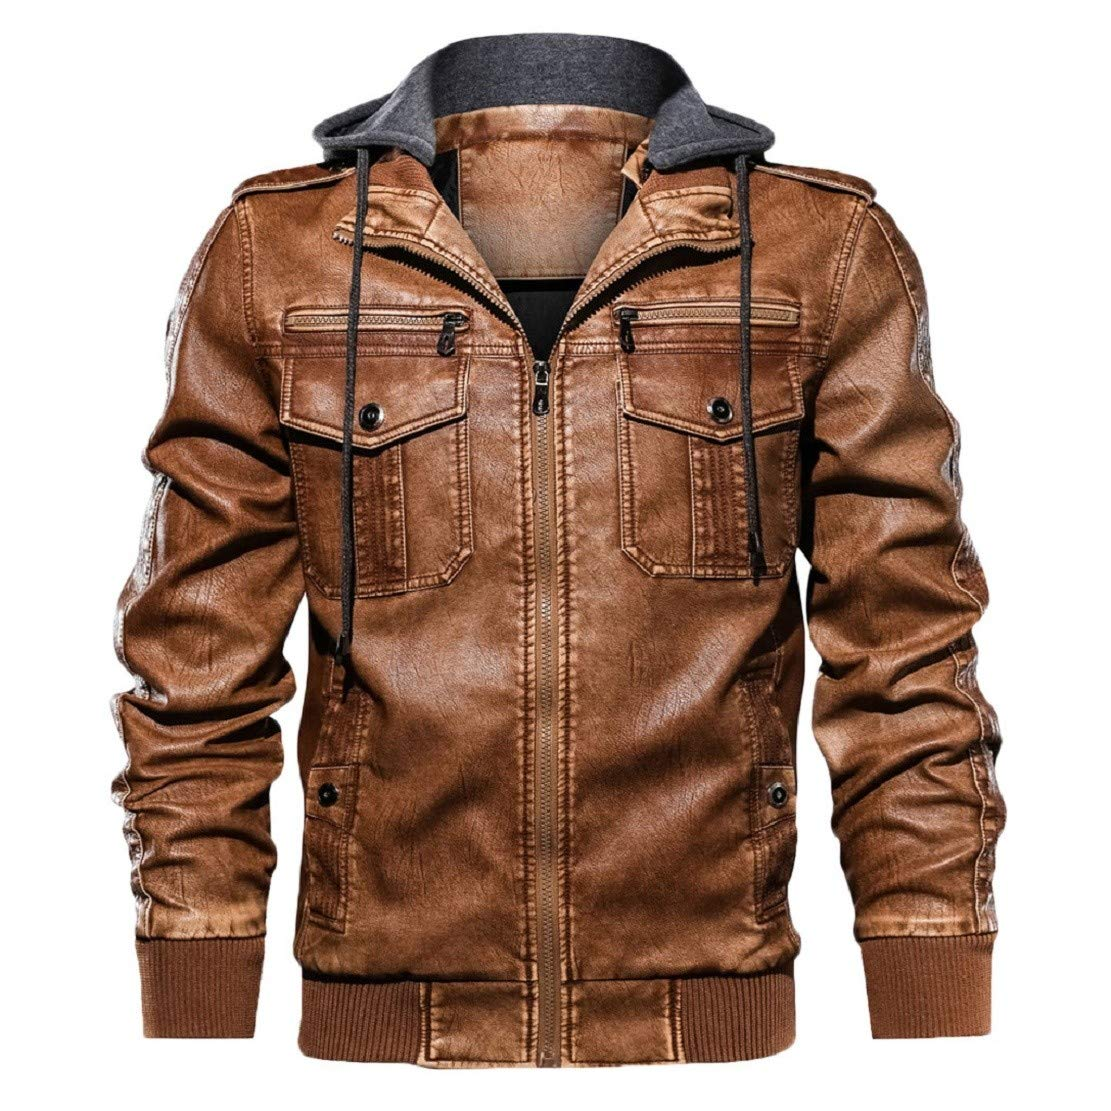 LowProfile Men's Vintage Retro Classic Loose Fit Hoodie Bomber Jacket Faux Leather Zip Motor Jacket with Pocket Brown